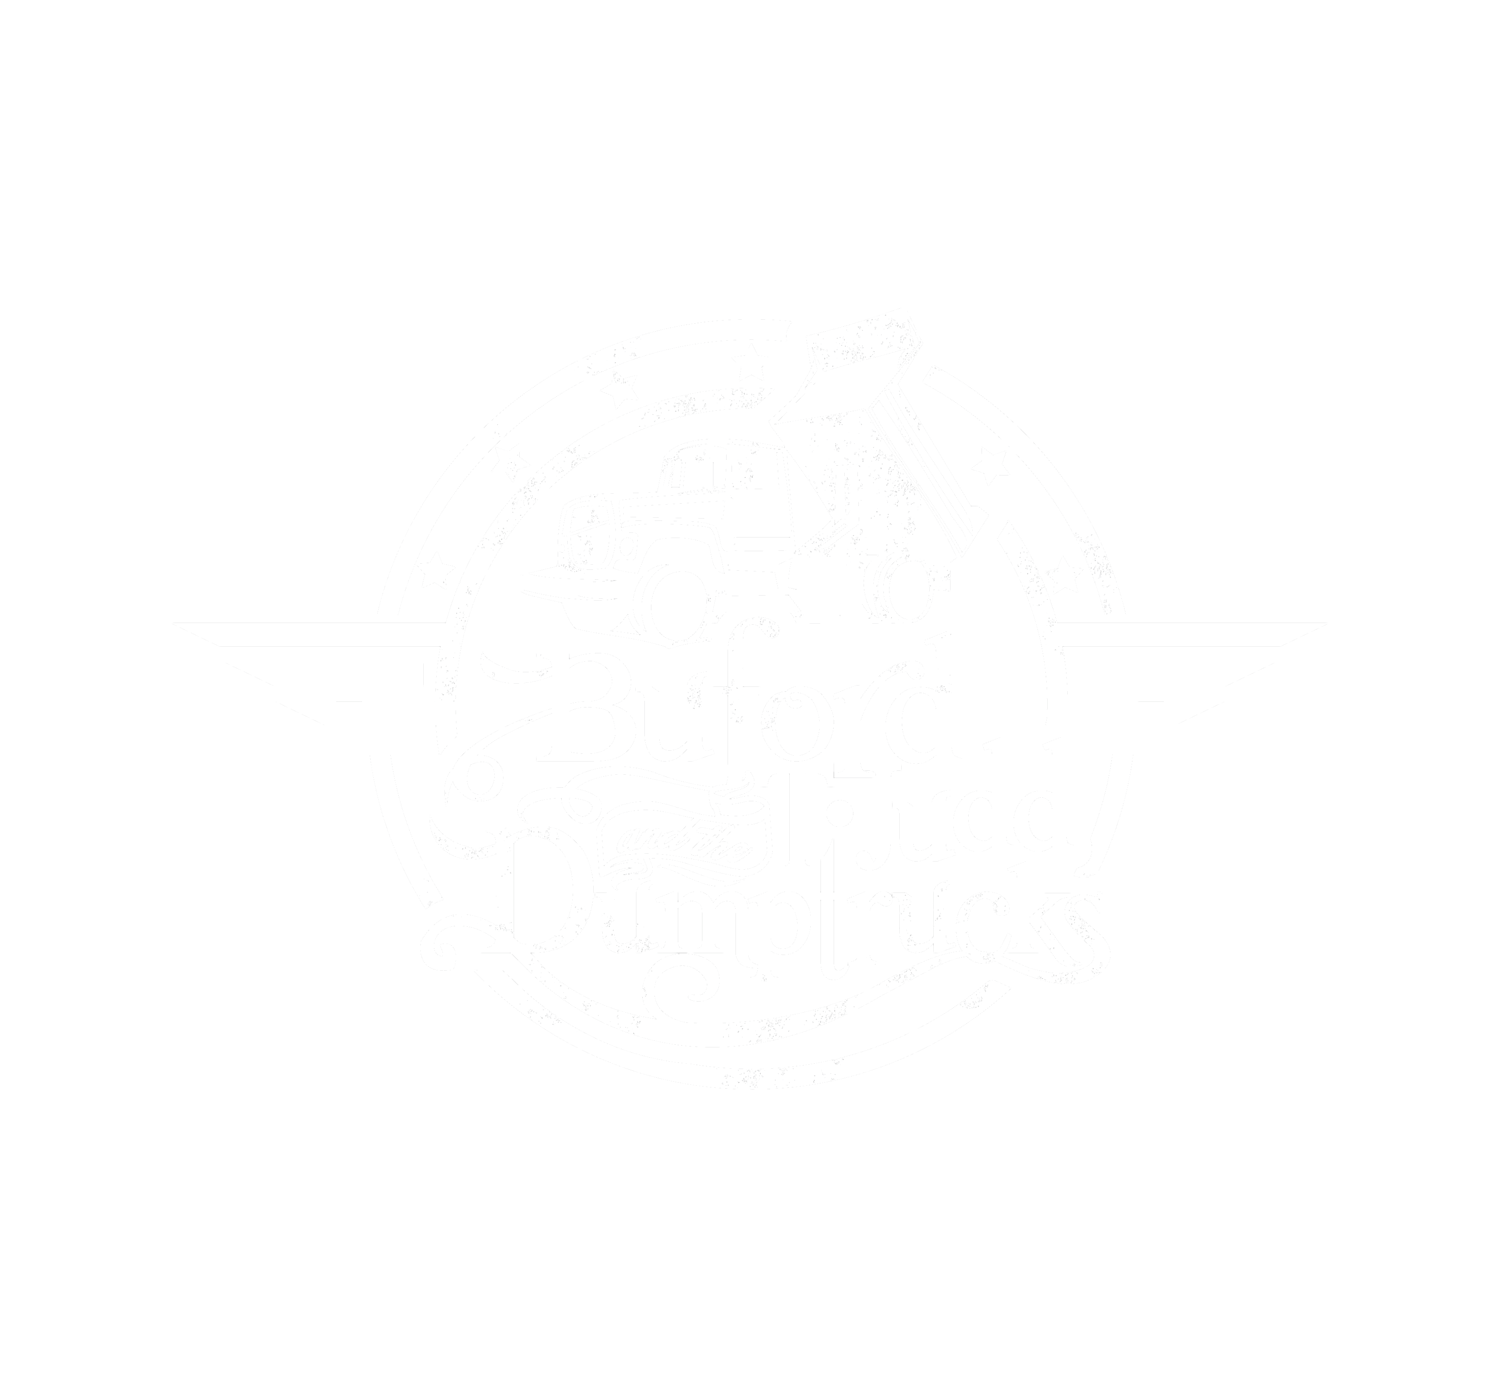 Buford T Judd & the Dumptrucks